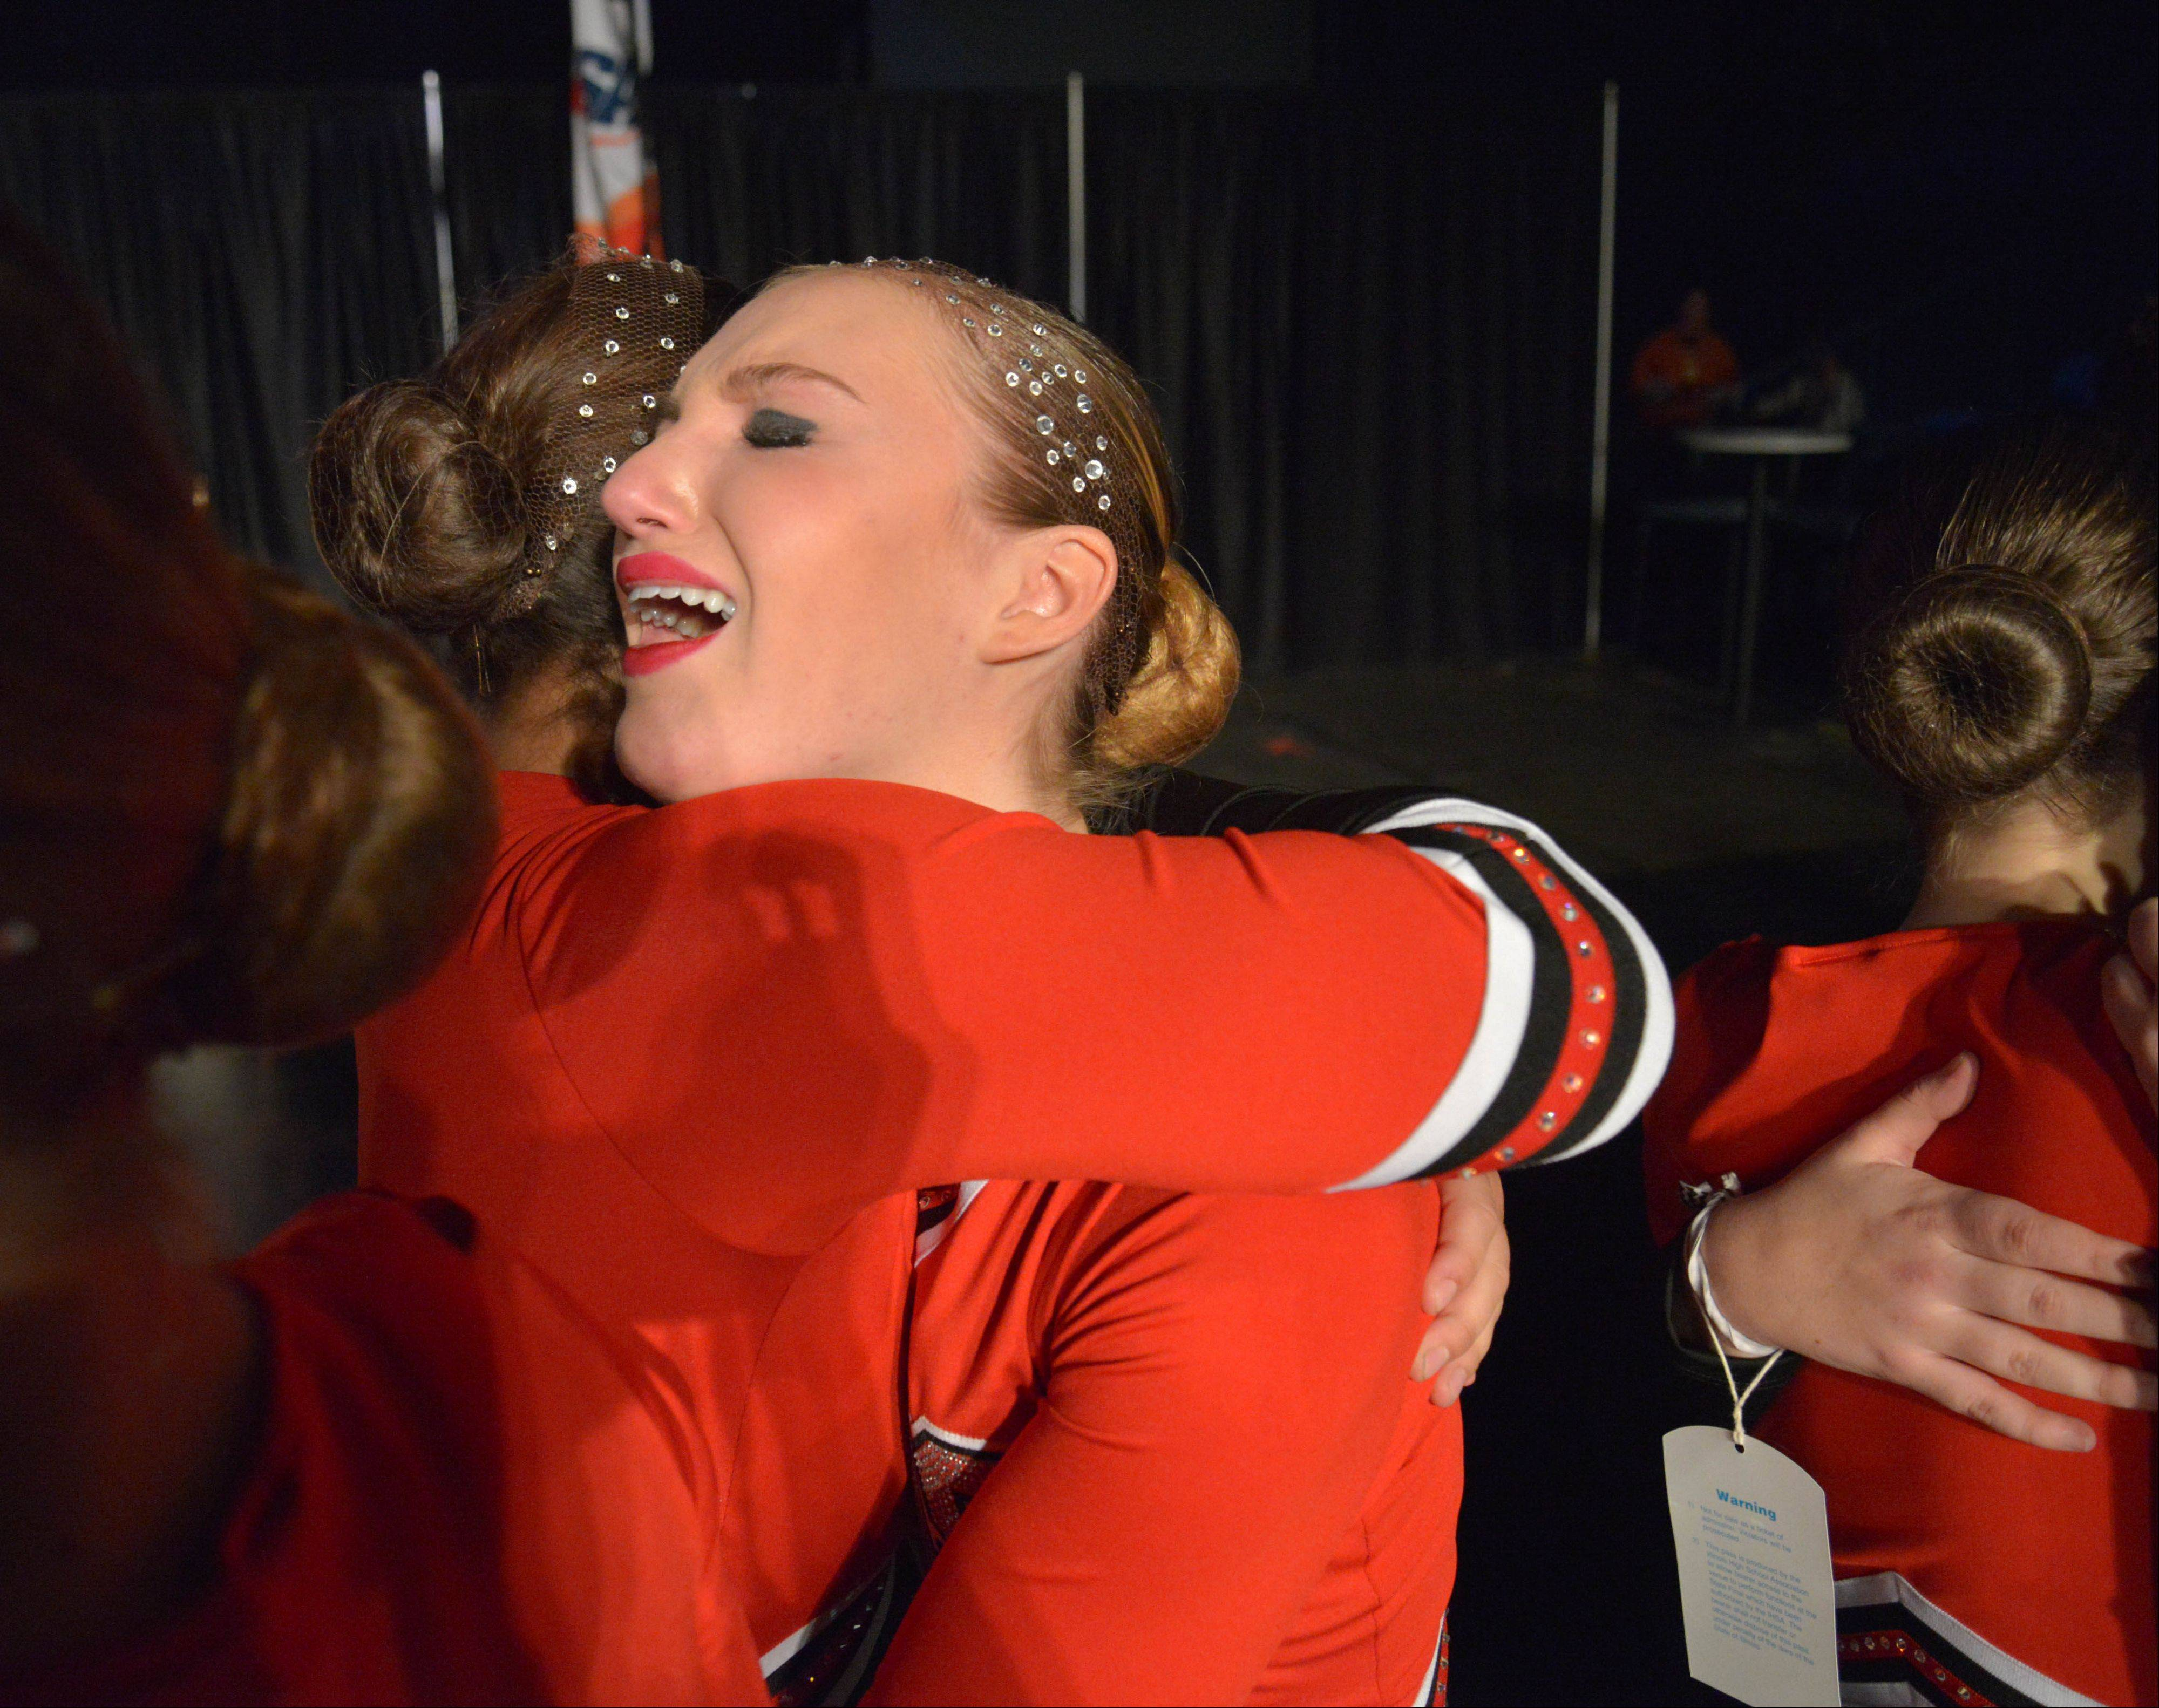 Lauren Delisle of Barrington High School can't hold back the tears of joy after winning second place in the 3A IHSA Dance State Final at U.S. Cellular Coliseum in Bloomington Saturday. 90 teams vied for state champion at this event.